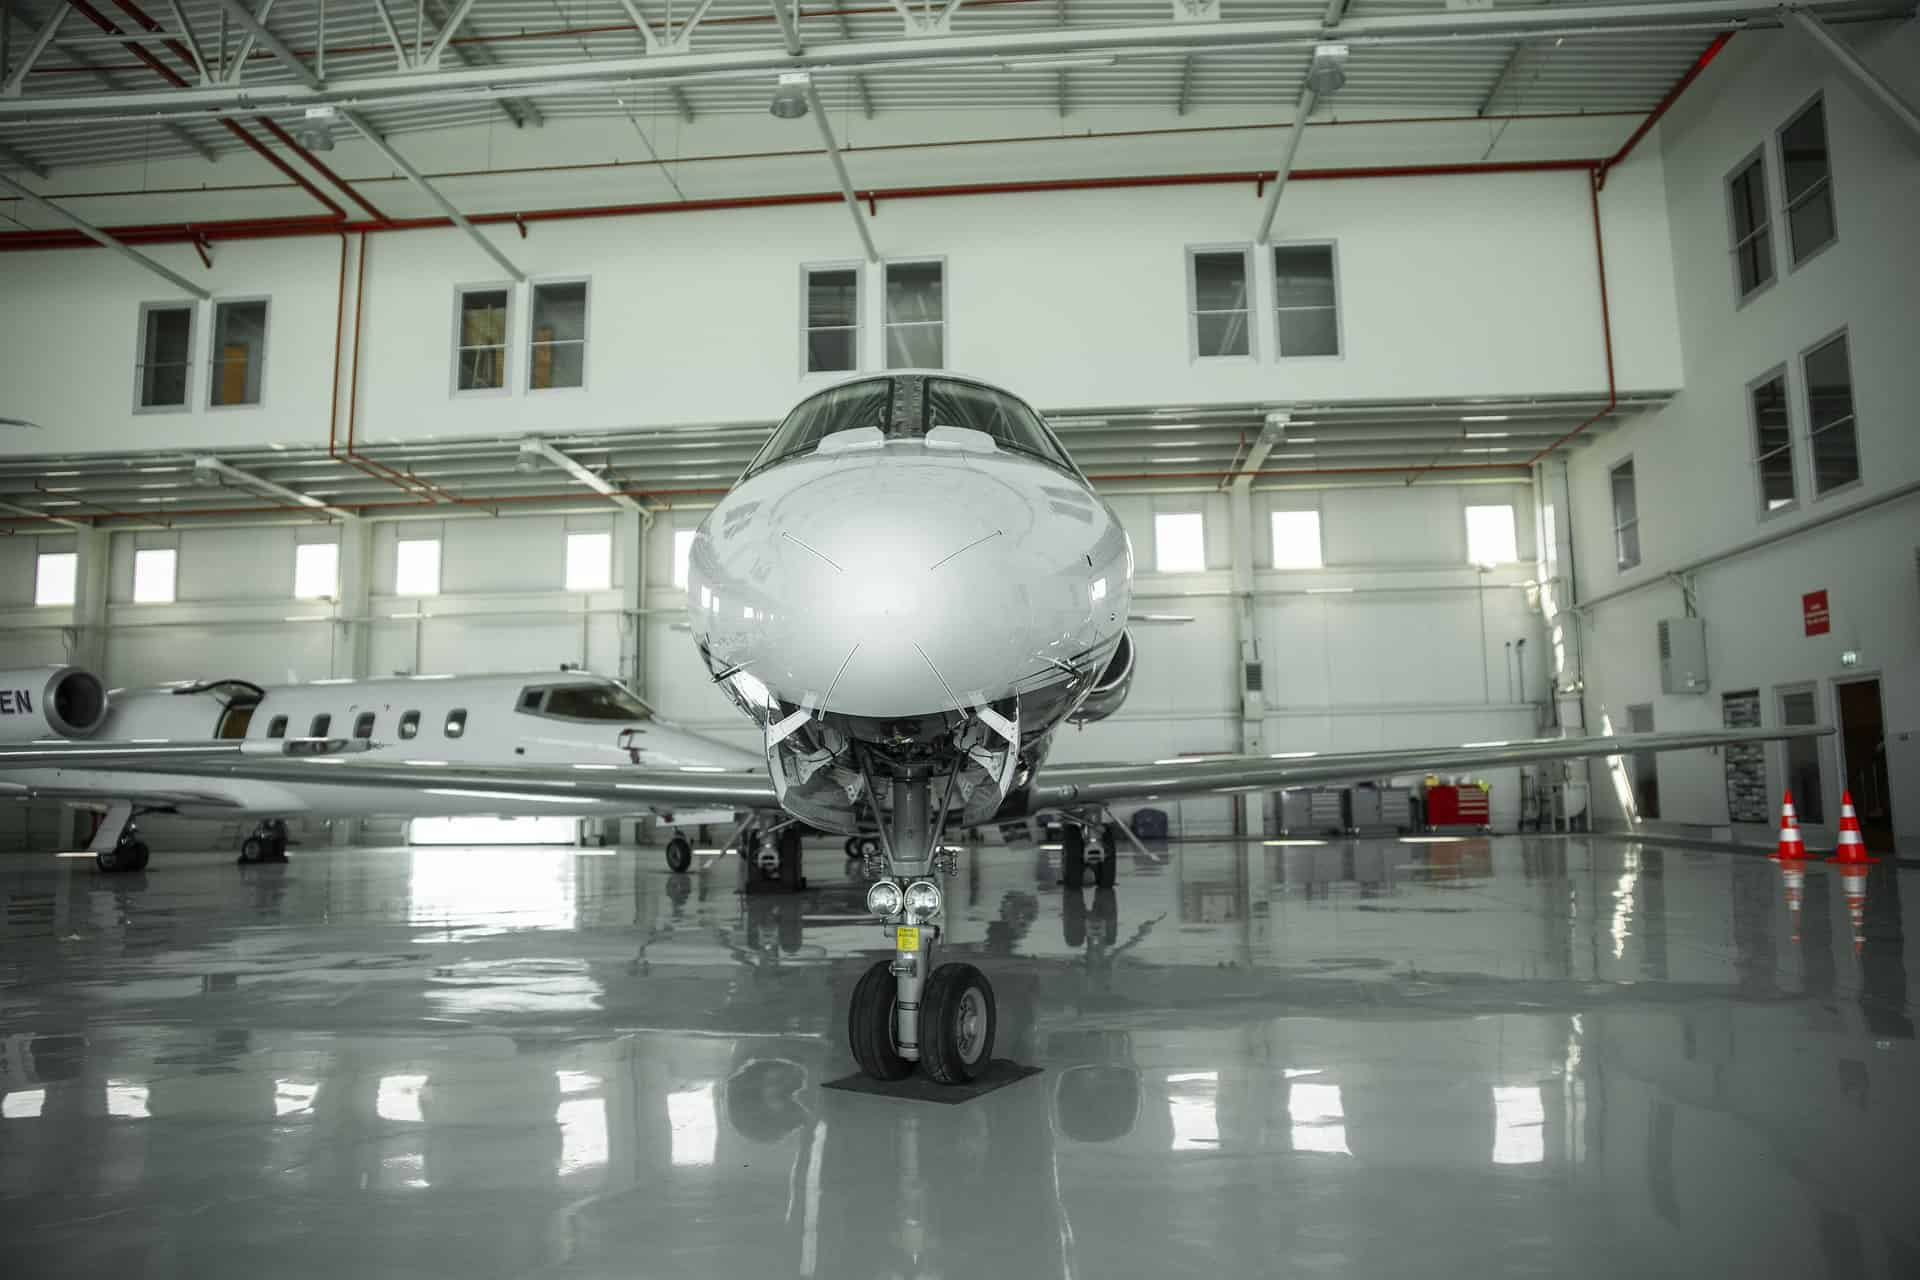 Fire Protection For Aircraft Hangars